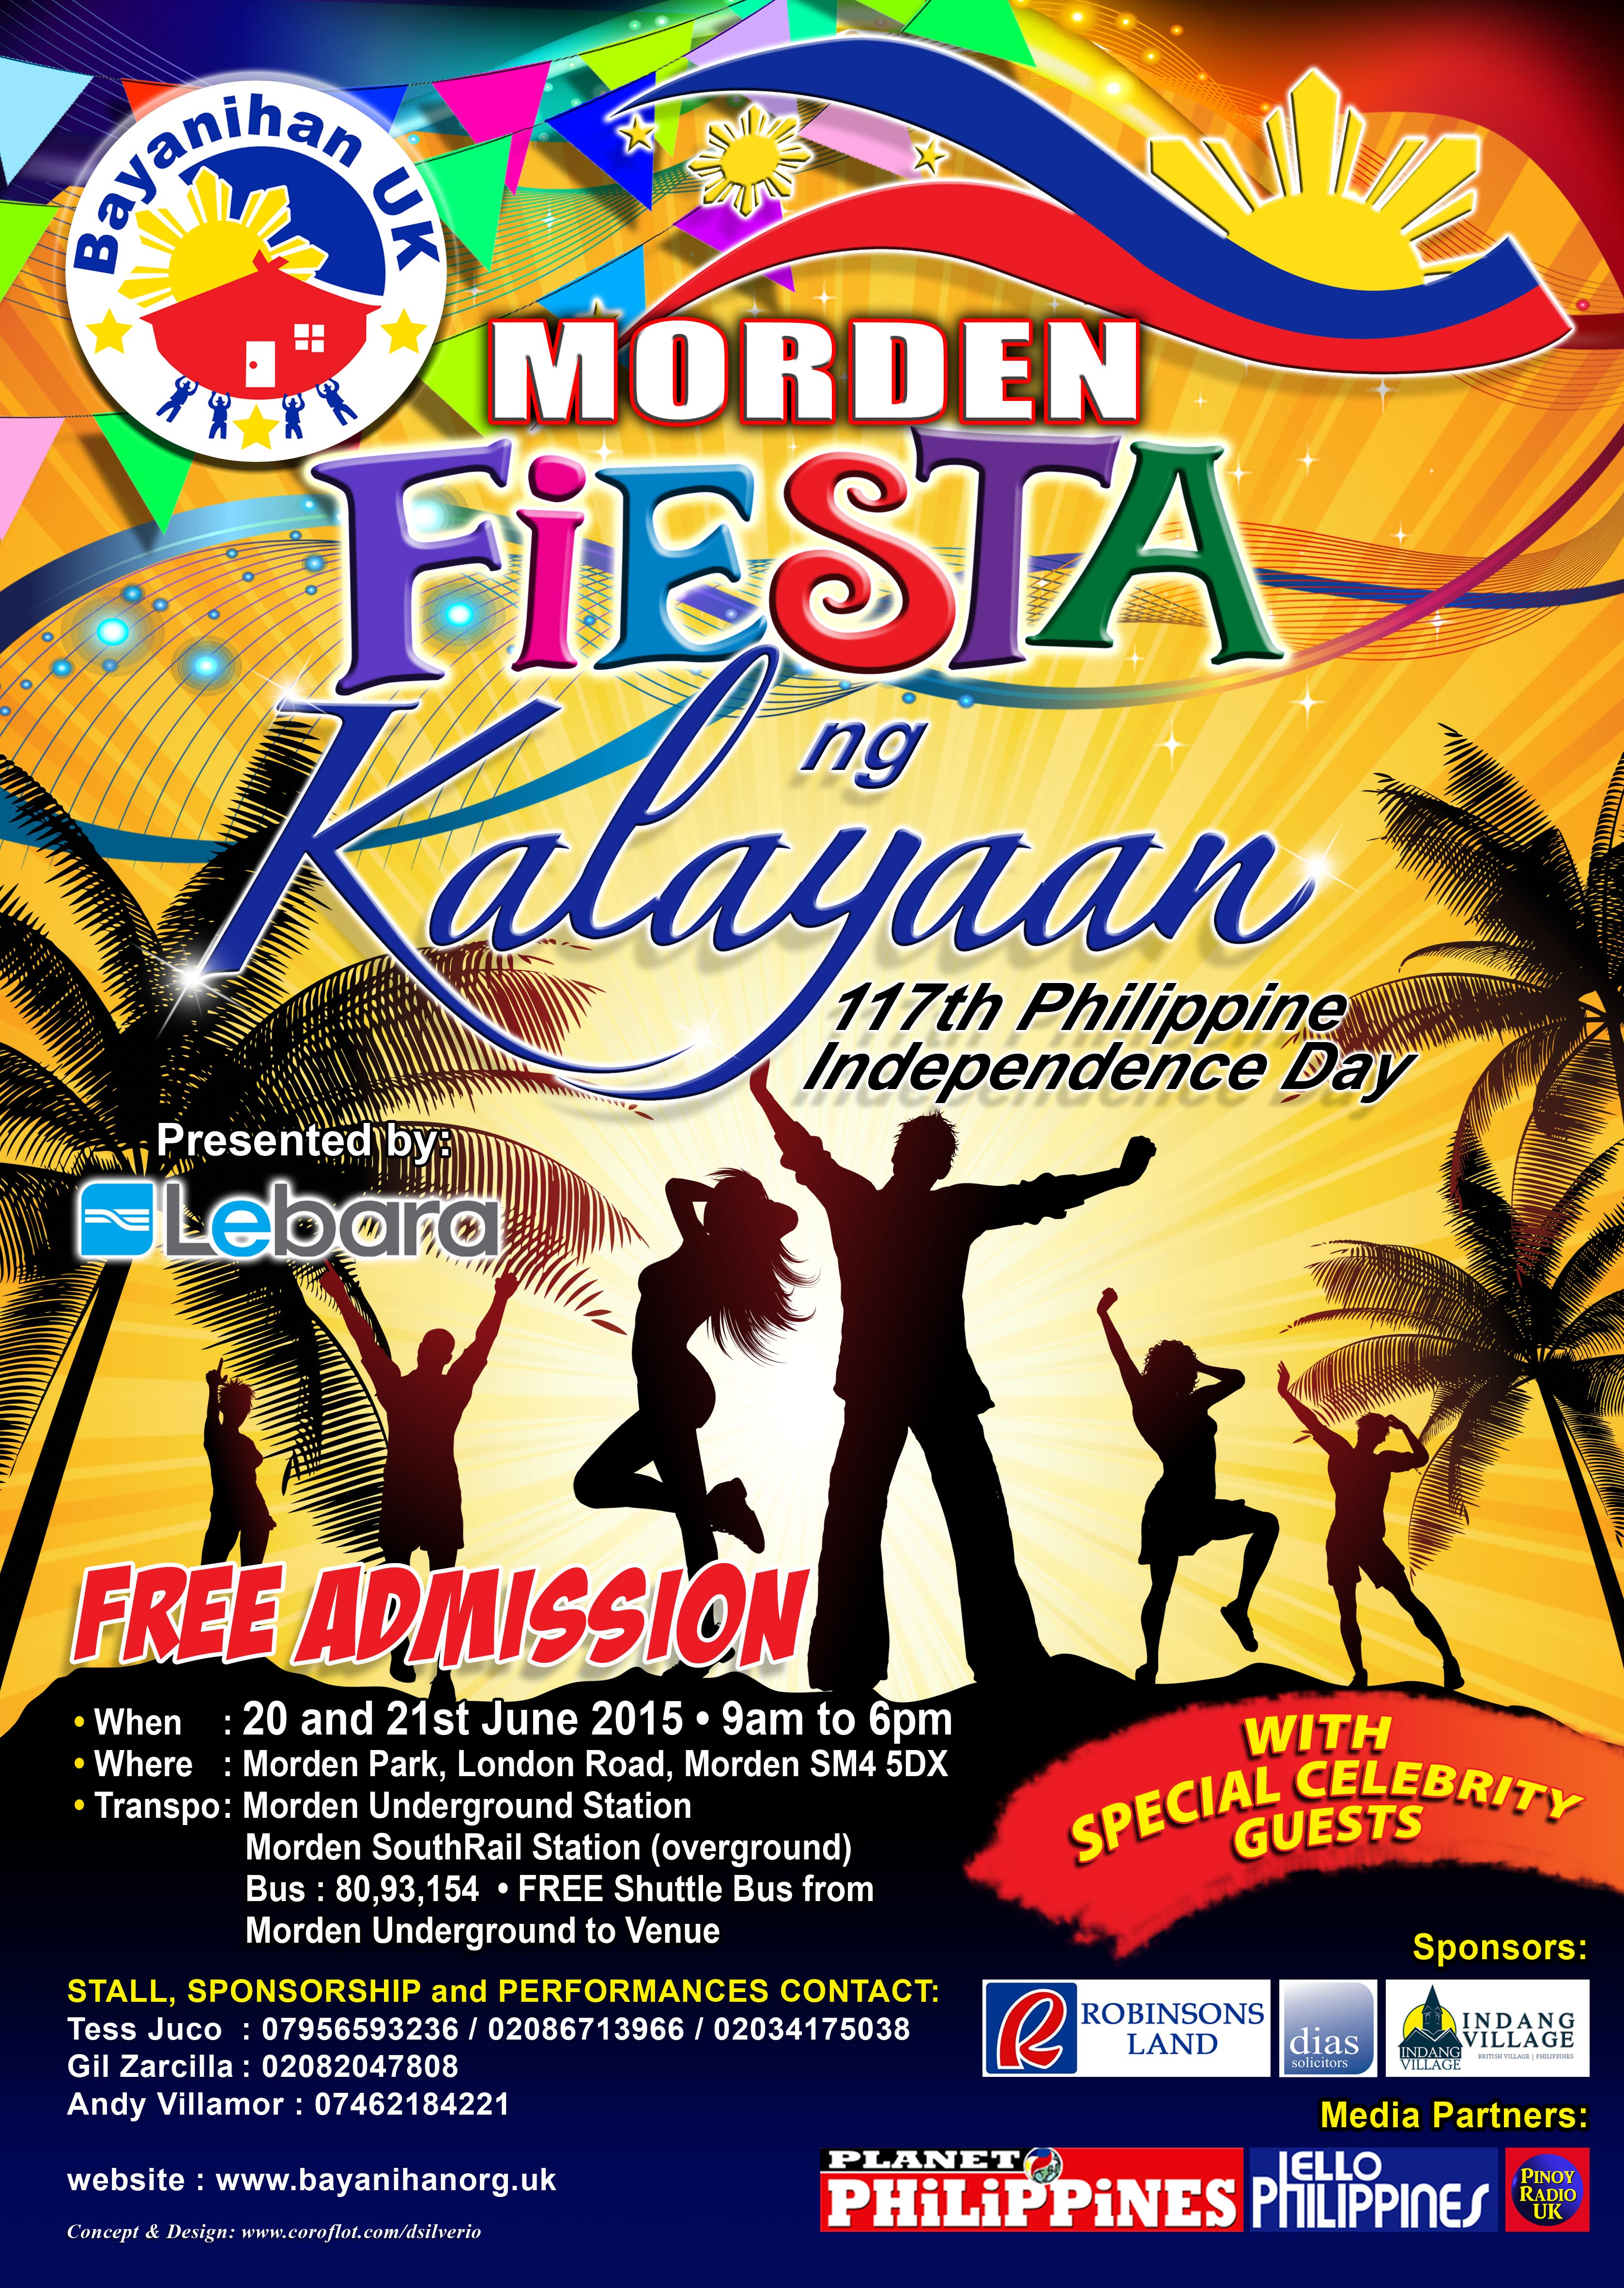 Morden Fiesta ng Kalayaan - 117th Philippine Independence ...